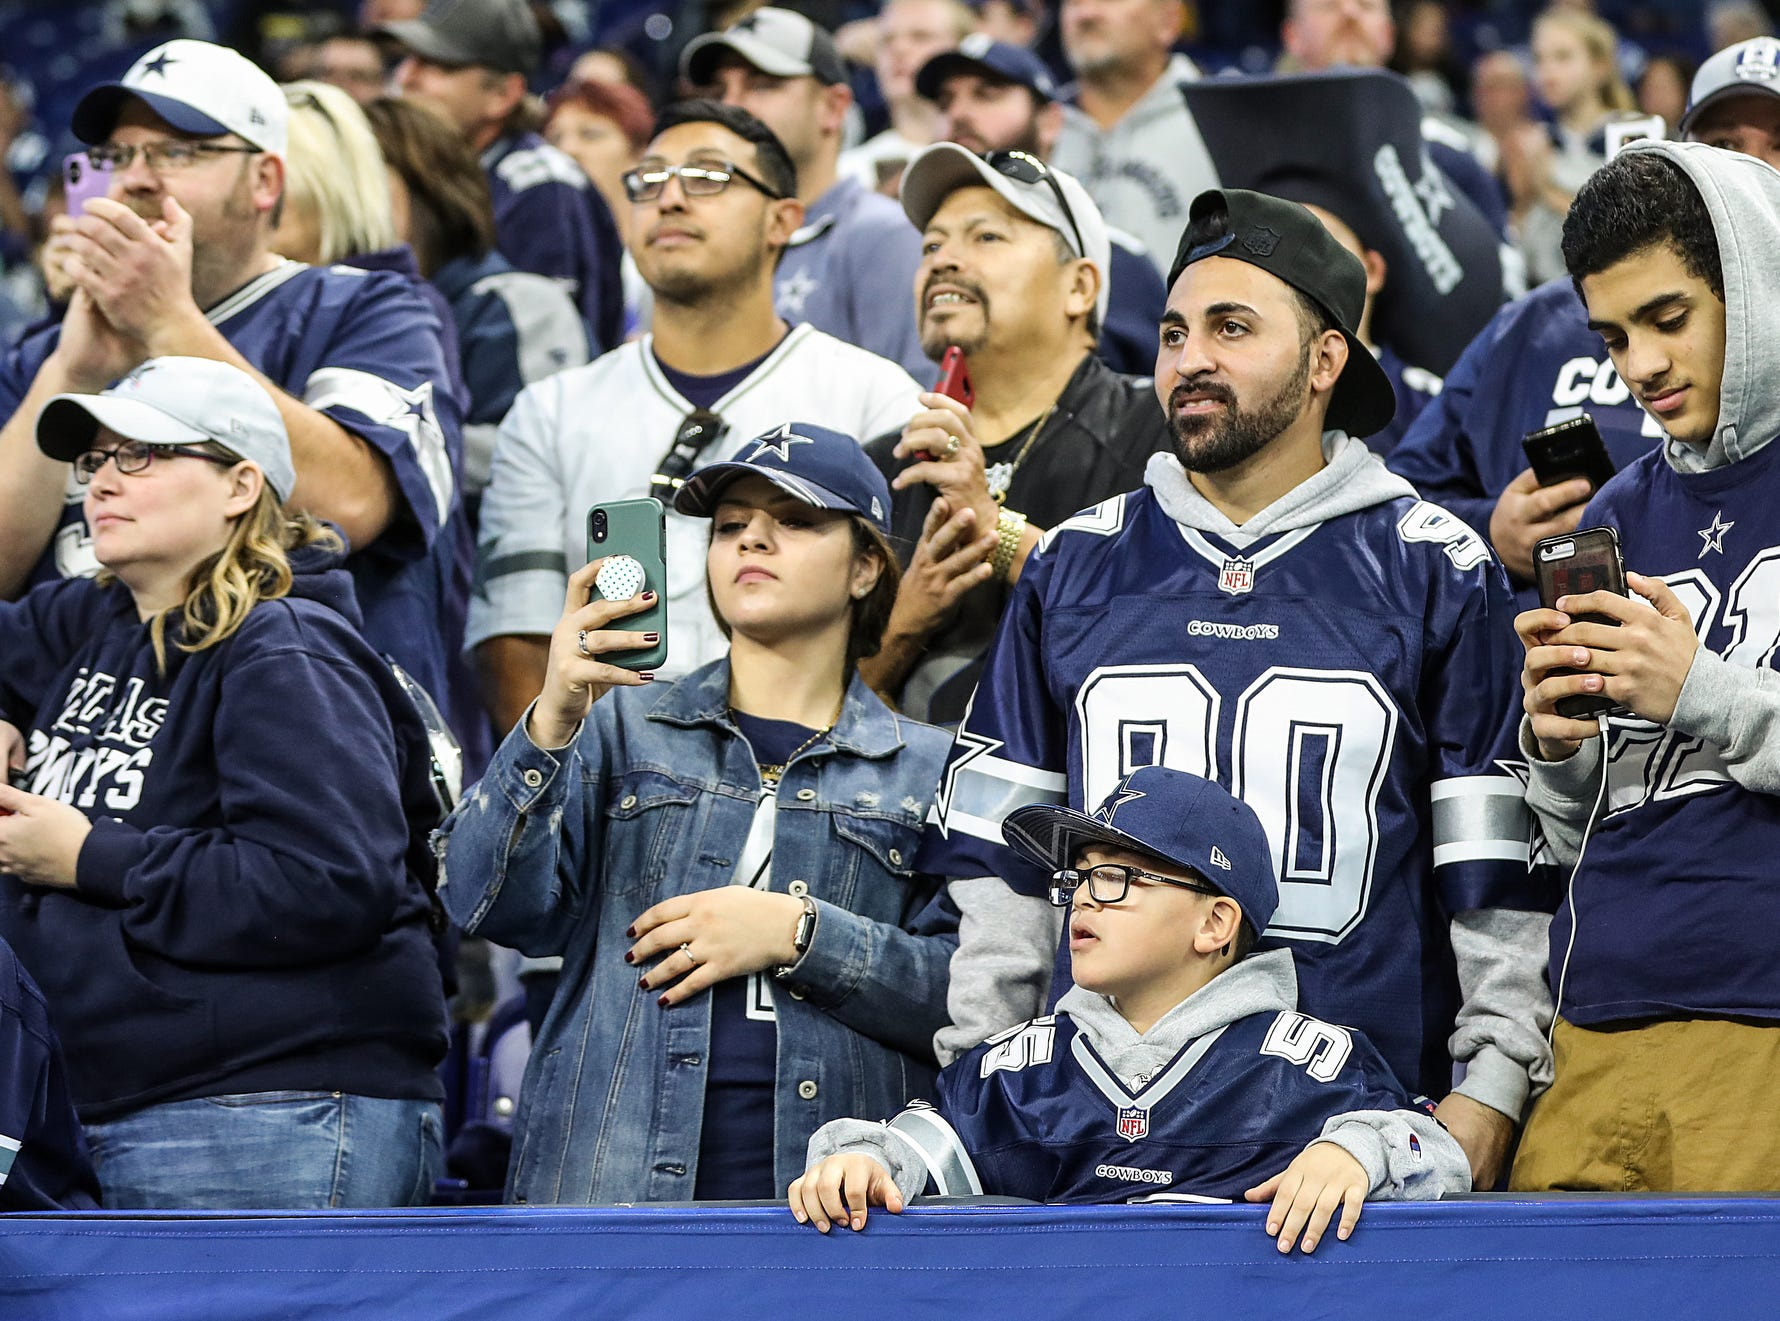 Dallas Cowboys fans hope for an autograph from team owner Jerry Jones before the team faced the Indianapolis Colts in week 15 at Lucas Oil Stadium in Indianapolis, Sunday, Dec. 16, 2018.